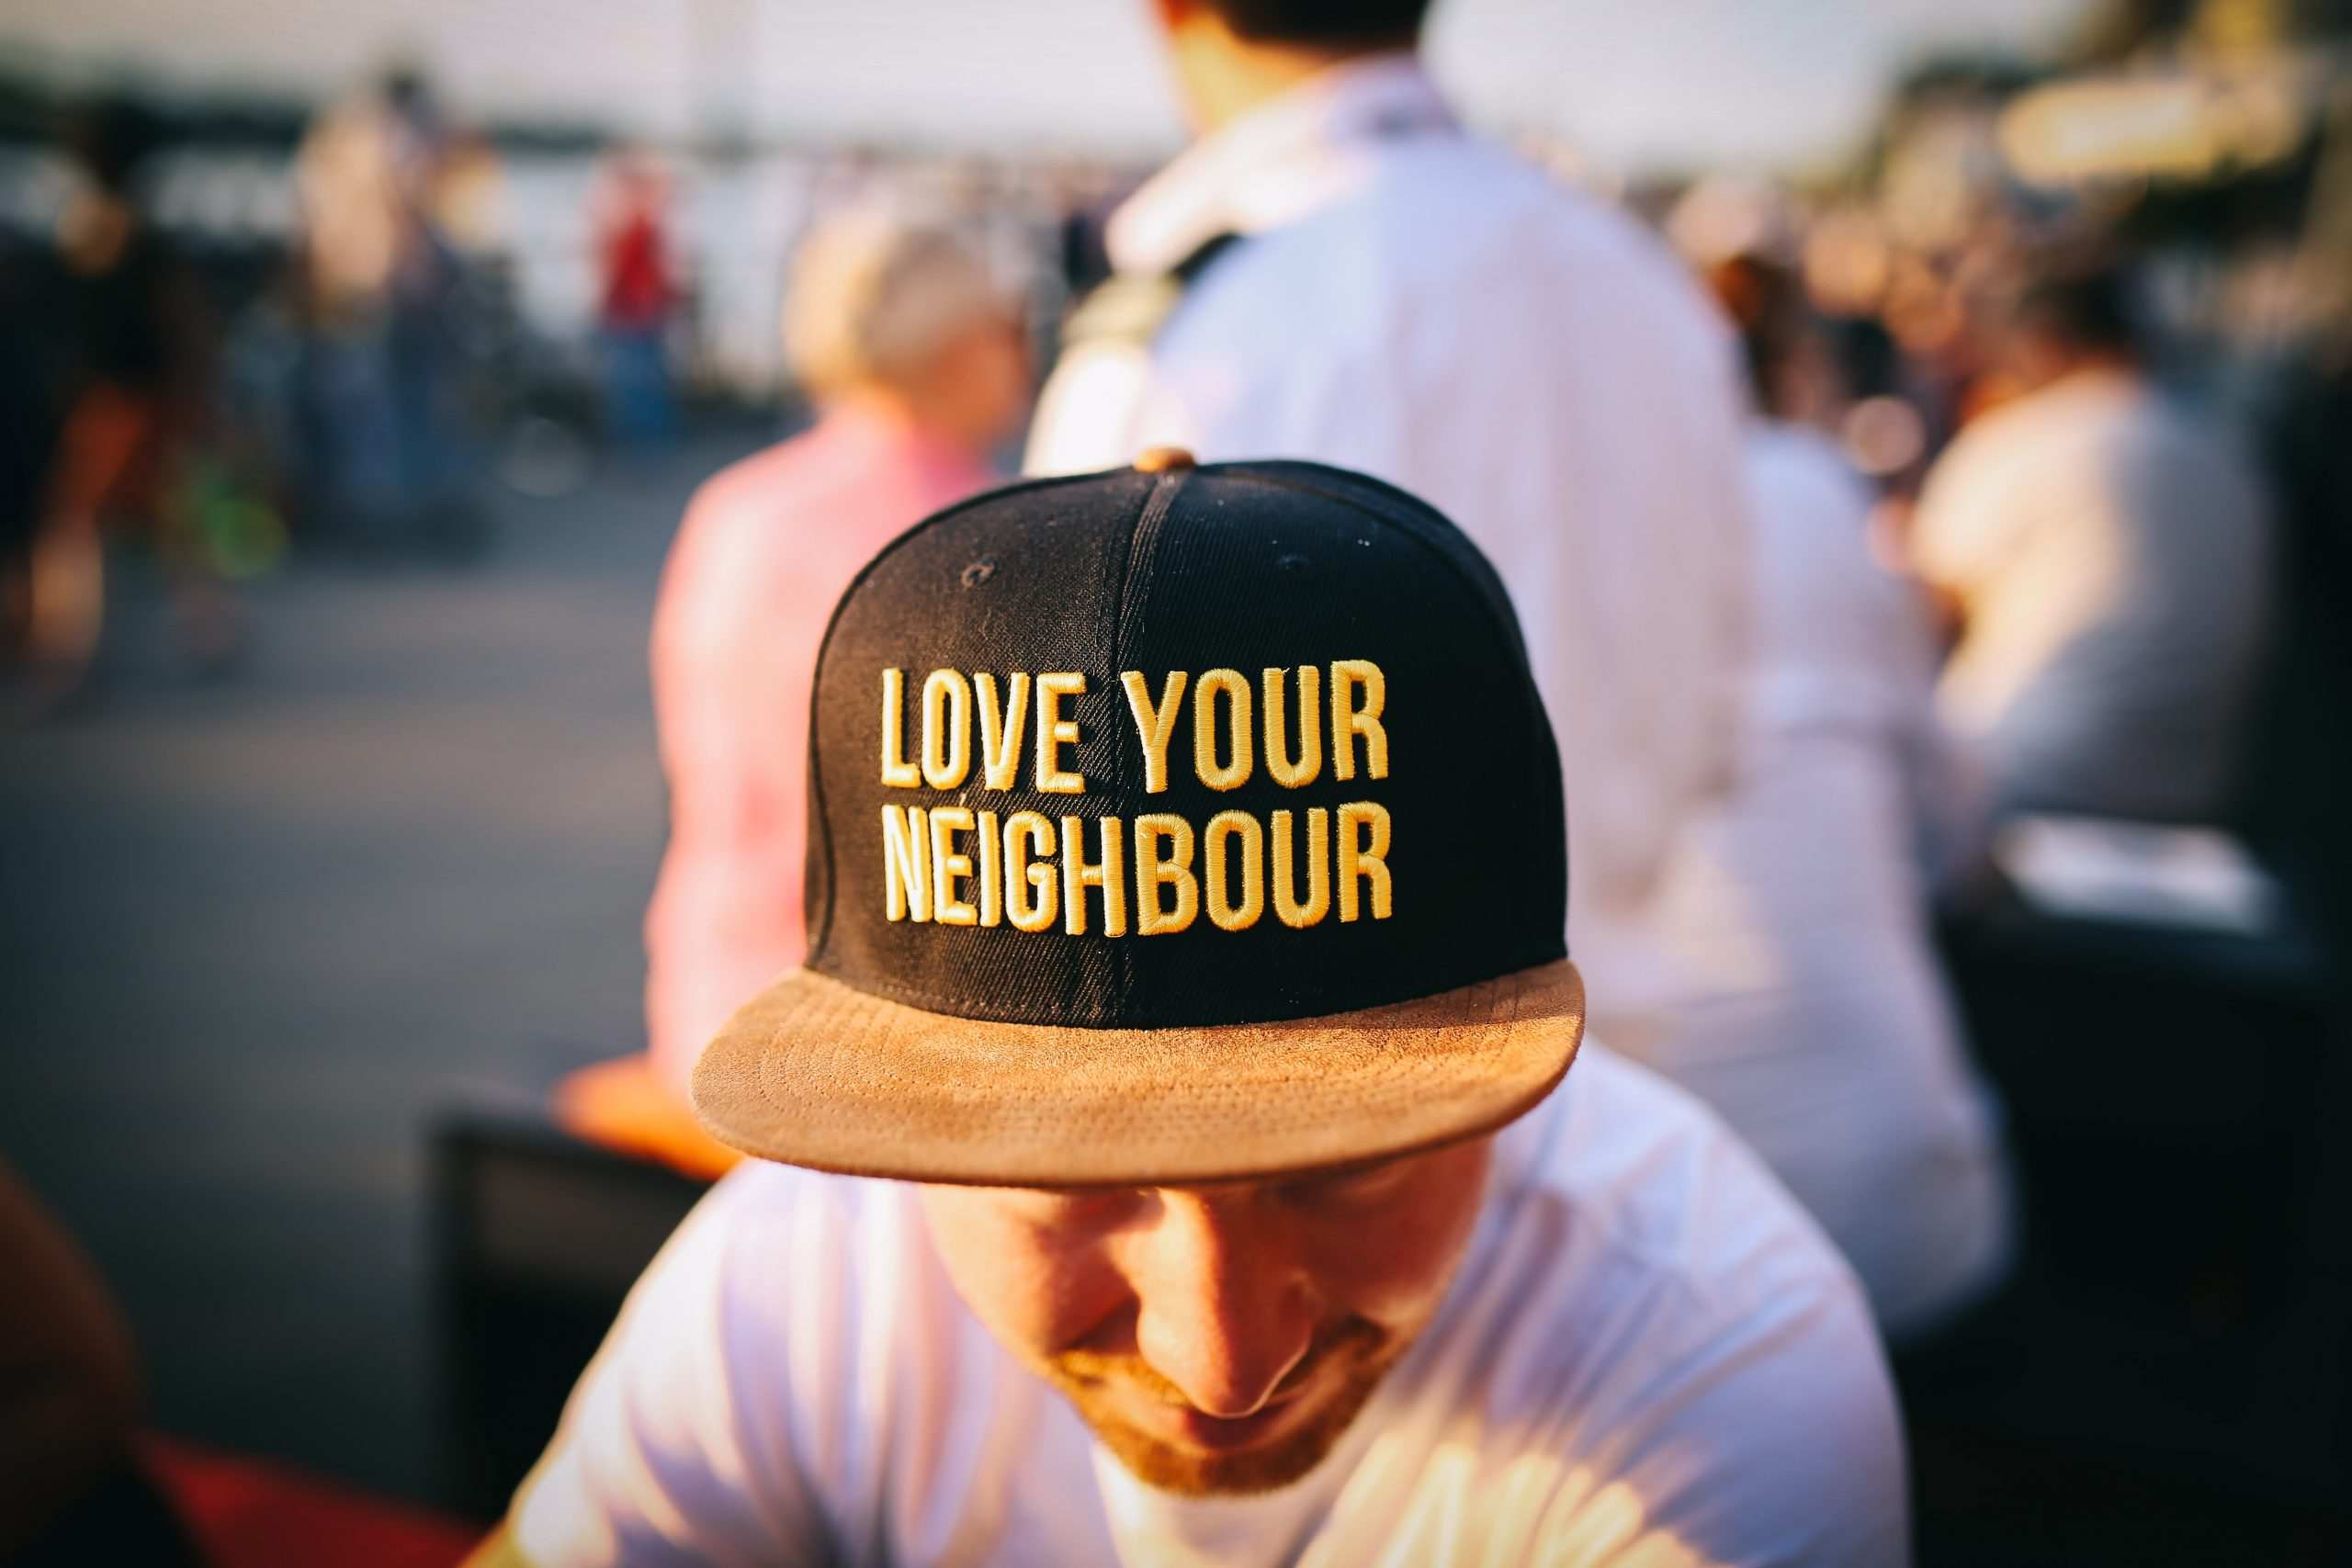 A man with the Love your neighbor cap